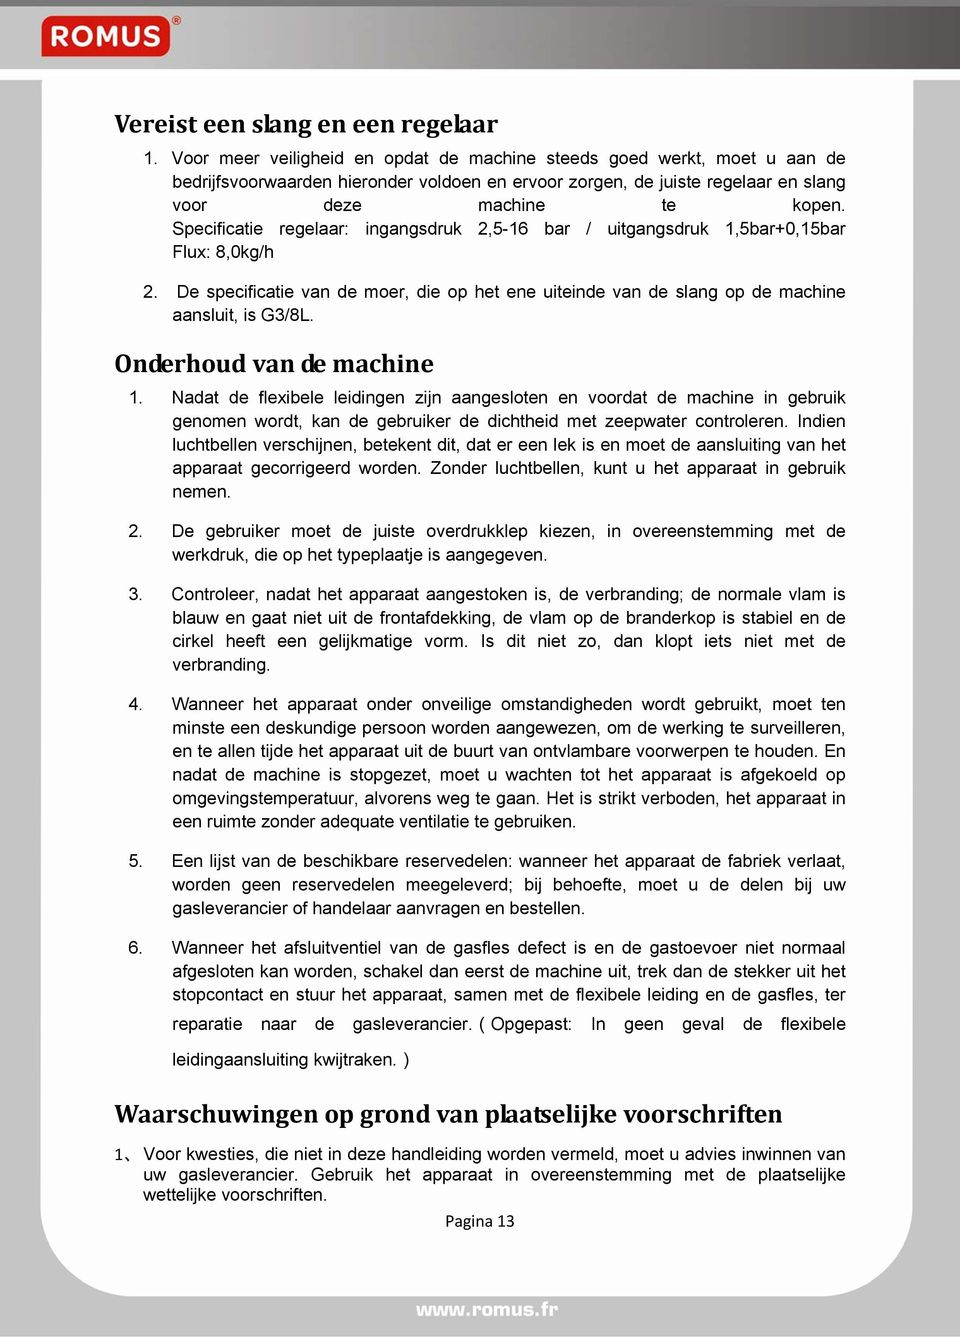 Specificatie regelaar: ingangsdruk 2,5-16 bar / uitgangsdruk 1,5bar+0,15bar Flux: 8,0kg/h 2. De specificatie van de moer, die op het ene uiteinde van de slang op de machine aansluit, is G3/8L.